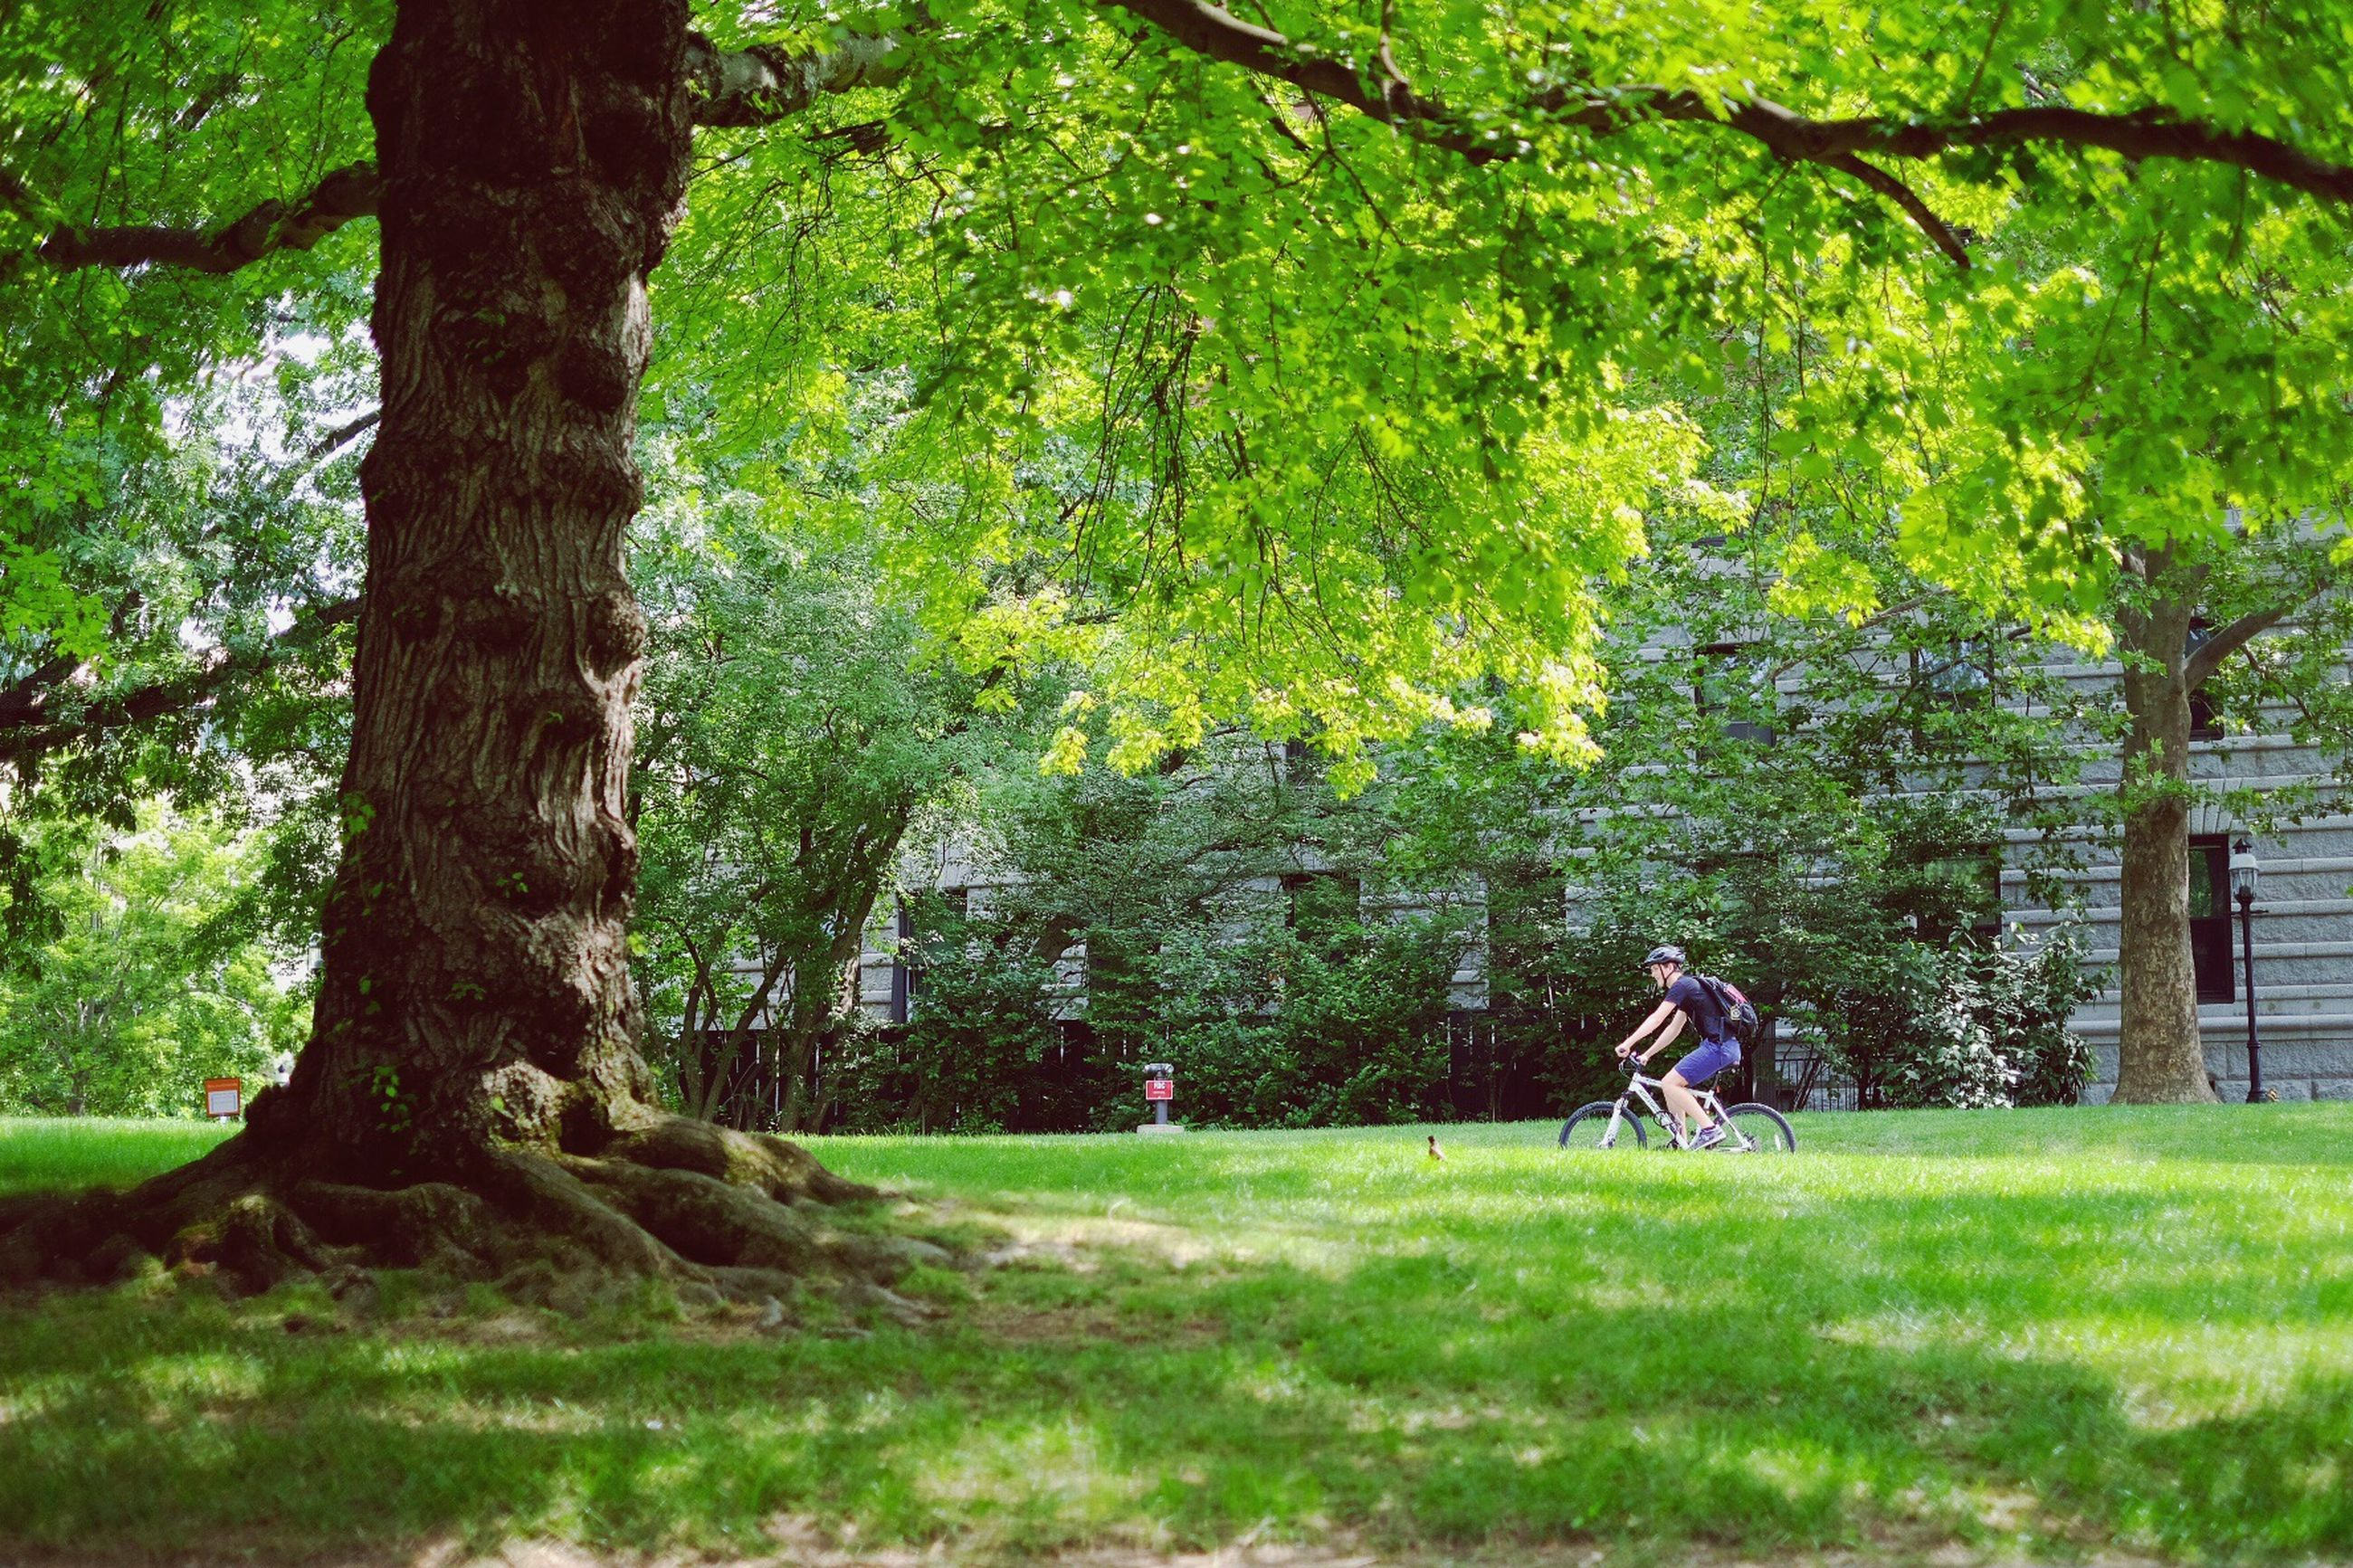 tree, nature, growth, grass, tree trunk, tranquility, beauty in nature, tranquil scene, green color, bicycle, forest, day, outdoors, branch, landscape, scenery, one person, people